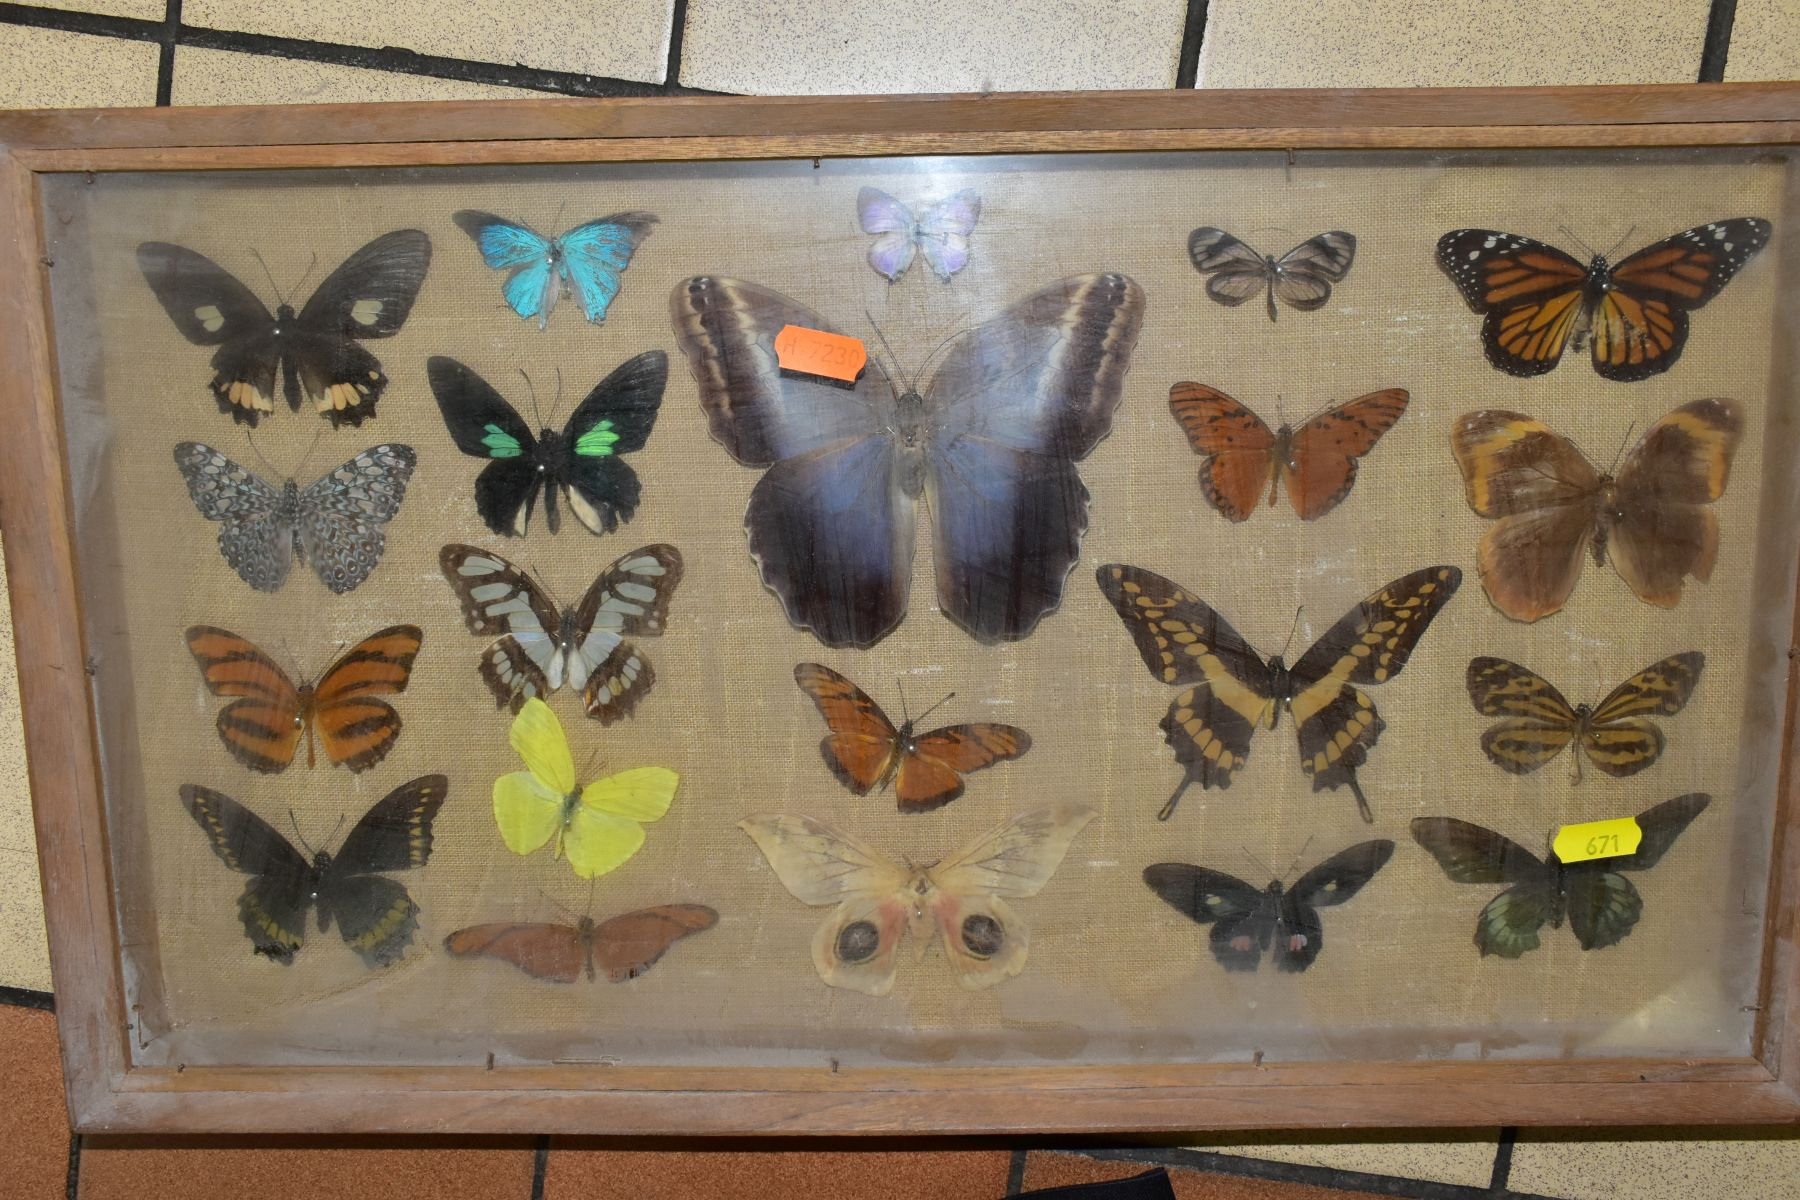 THREE DISPLAY CASES CONTAINING BUTTERFLIES AND MOTH SPECIMENS, together with four circular framed - Image 8 of 10